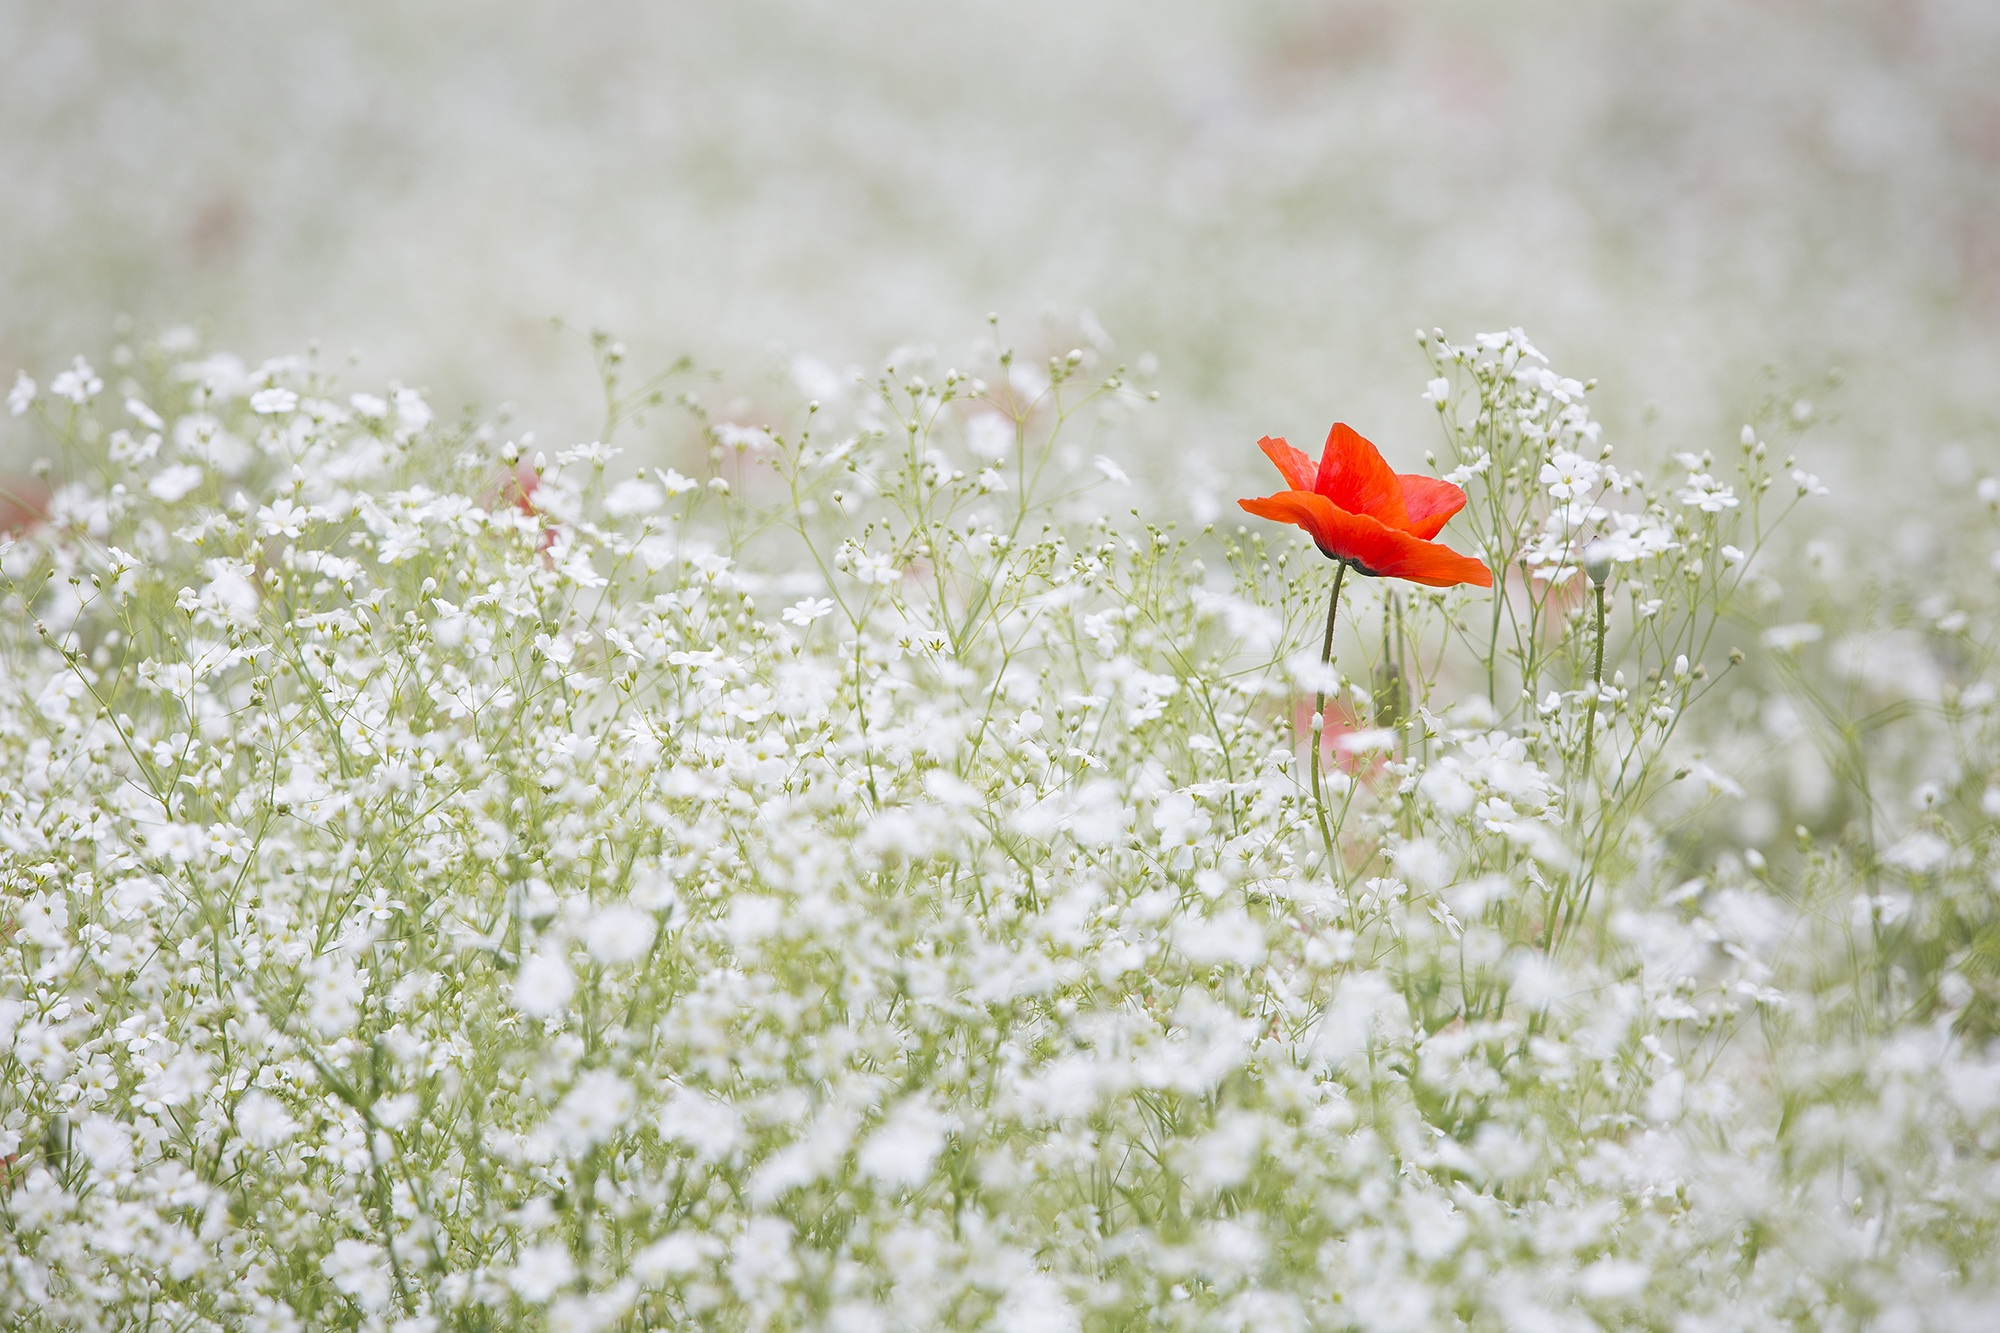 field of white flowers with one red poppy